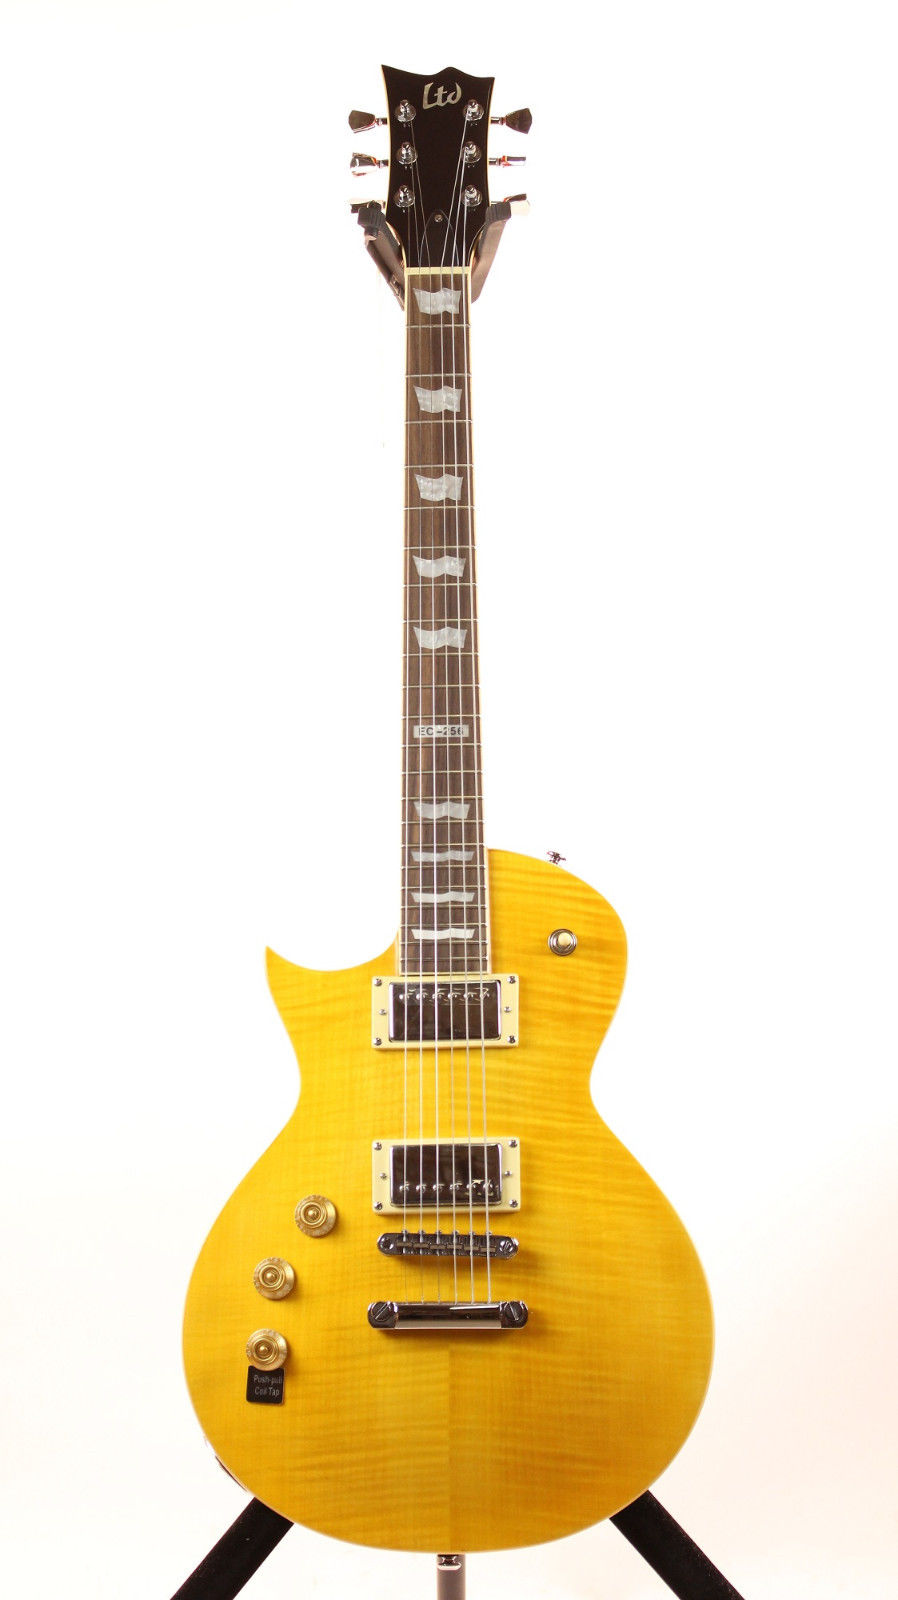 ESP LTD EC-256FM LD LH Distressed Electric Guitar Left Handed Design with Lemon Drop Finish